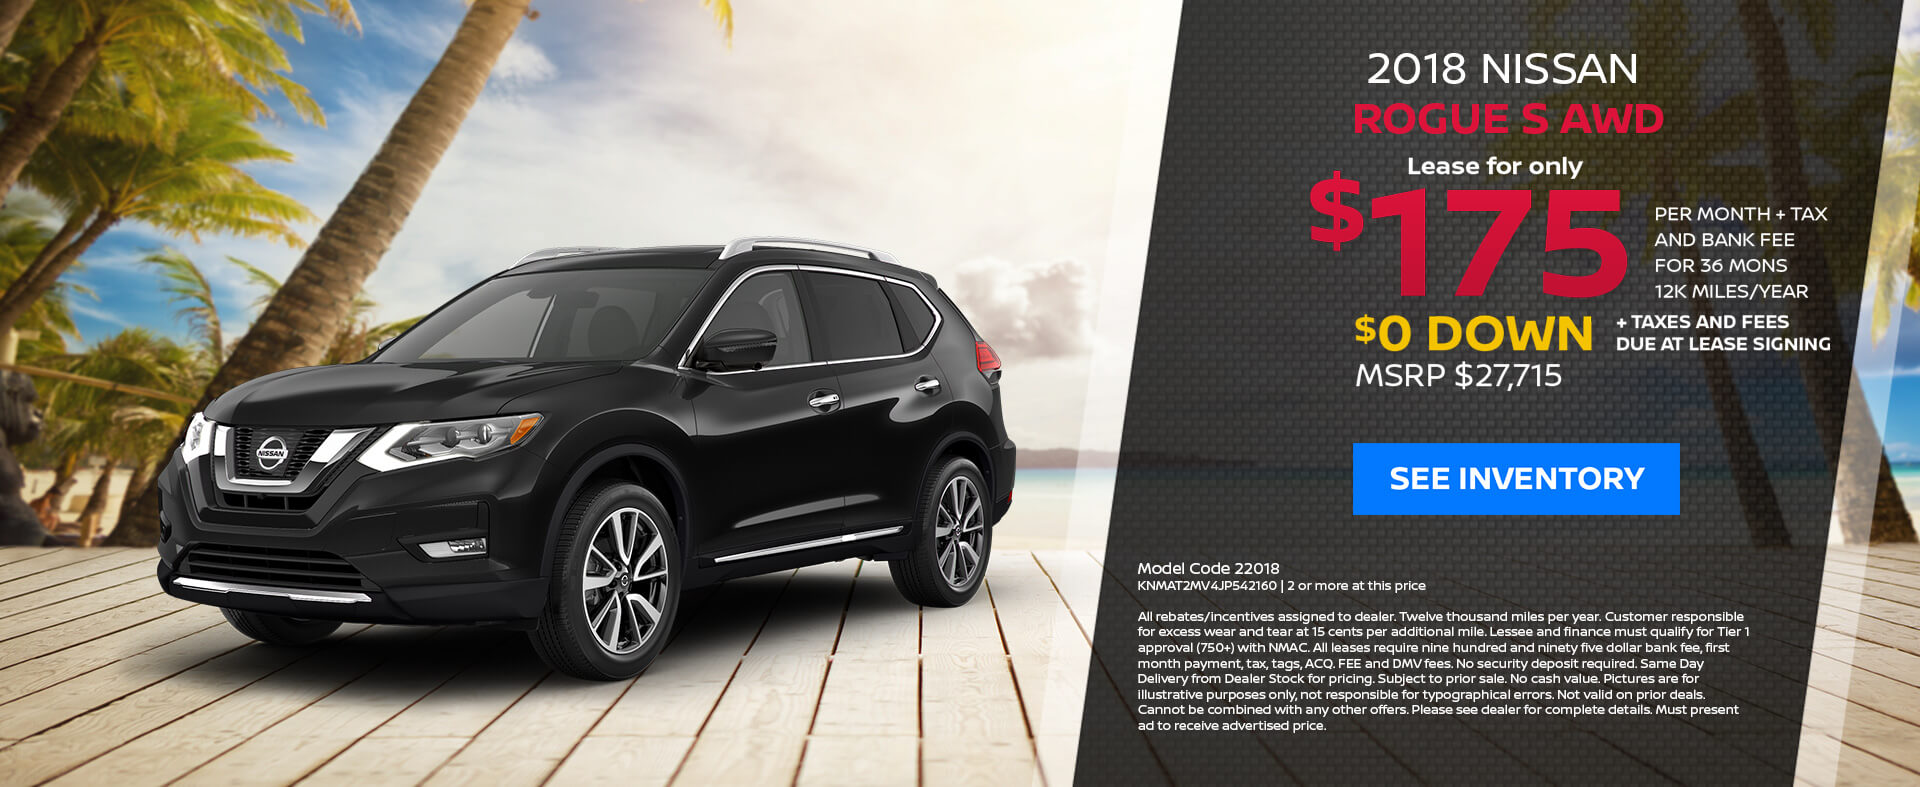 Nissan Rogue $175 Lease